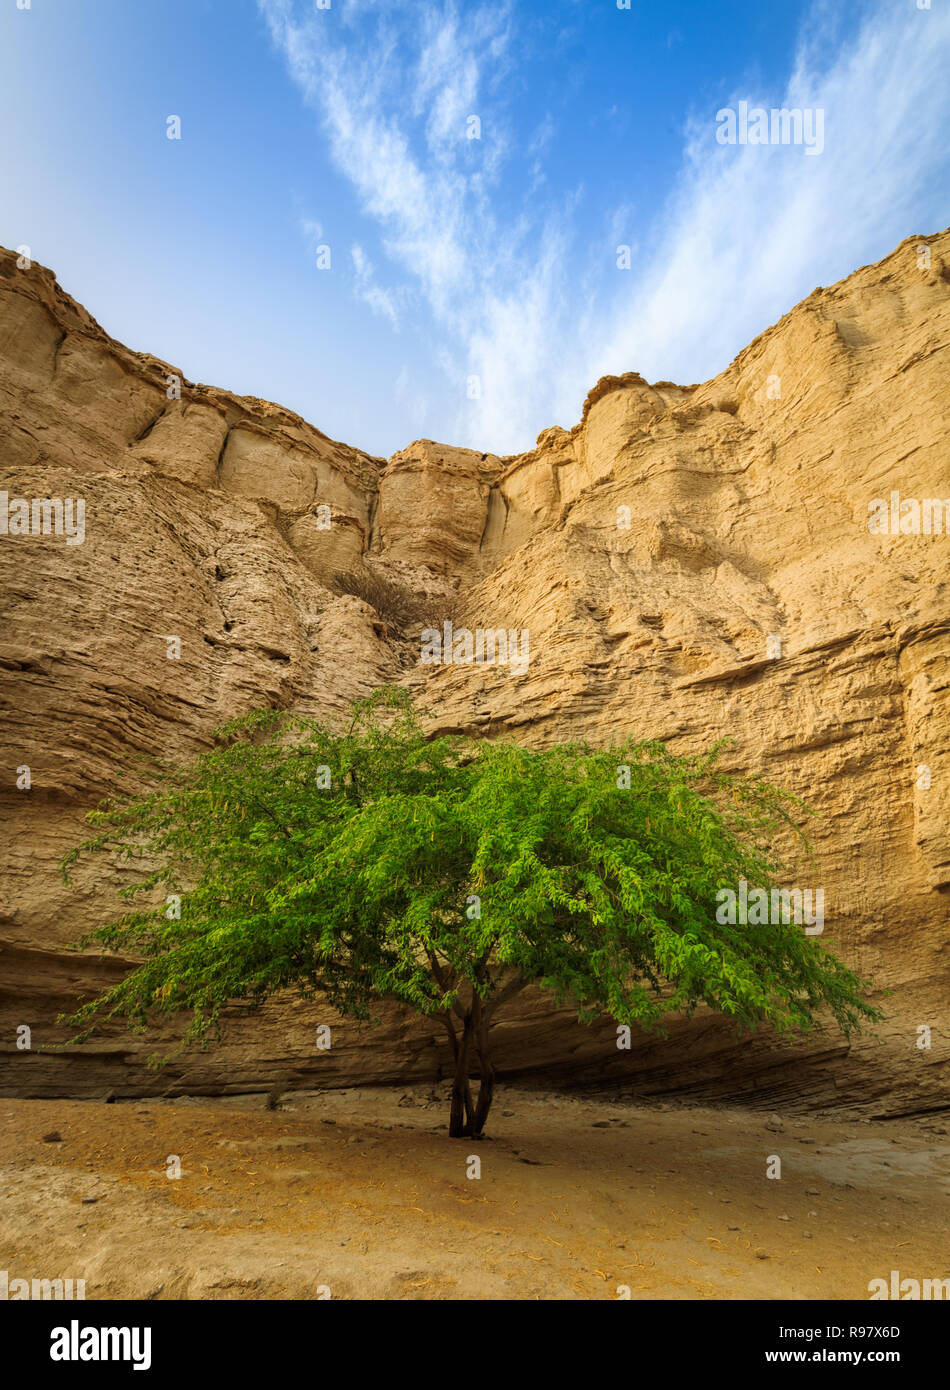 Iran. Qeshm island,Lonely tree - Stock Image